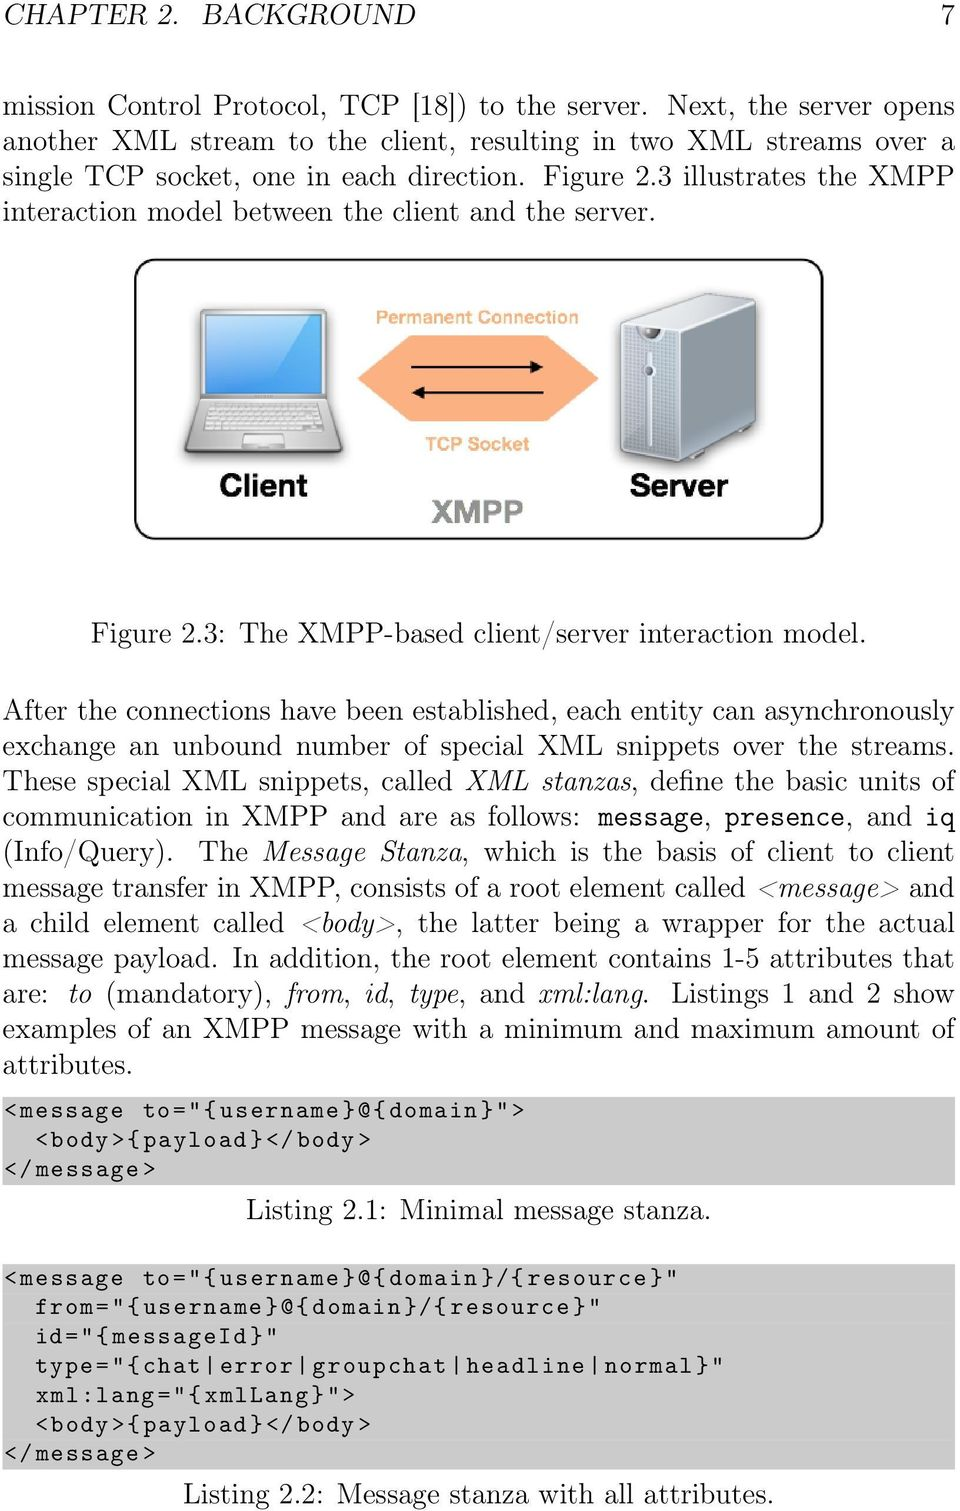 3 illustrates the XMPP interaction model between the client and the server. Figure 2.3: The XMPP-based client/server interaction model.